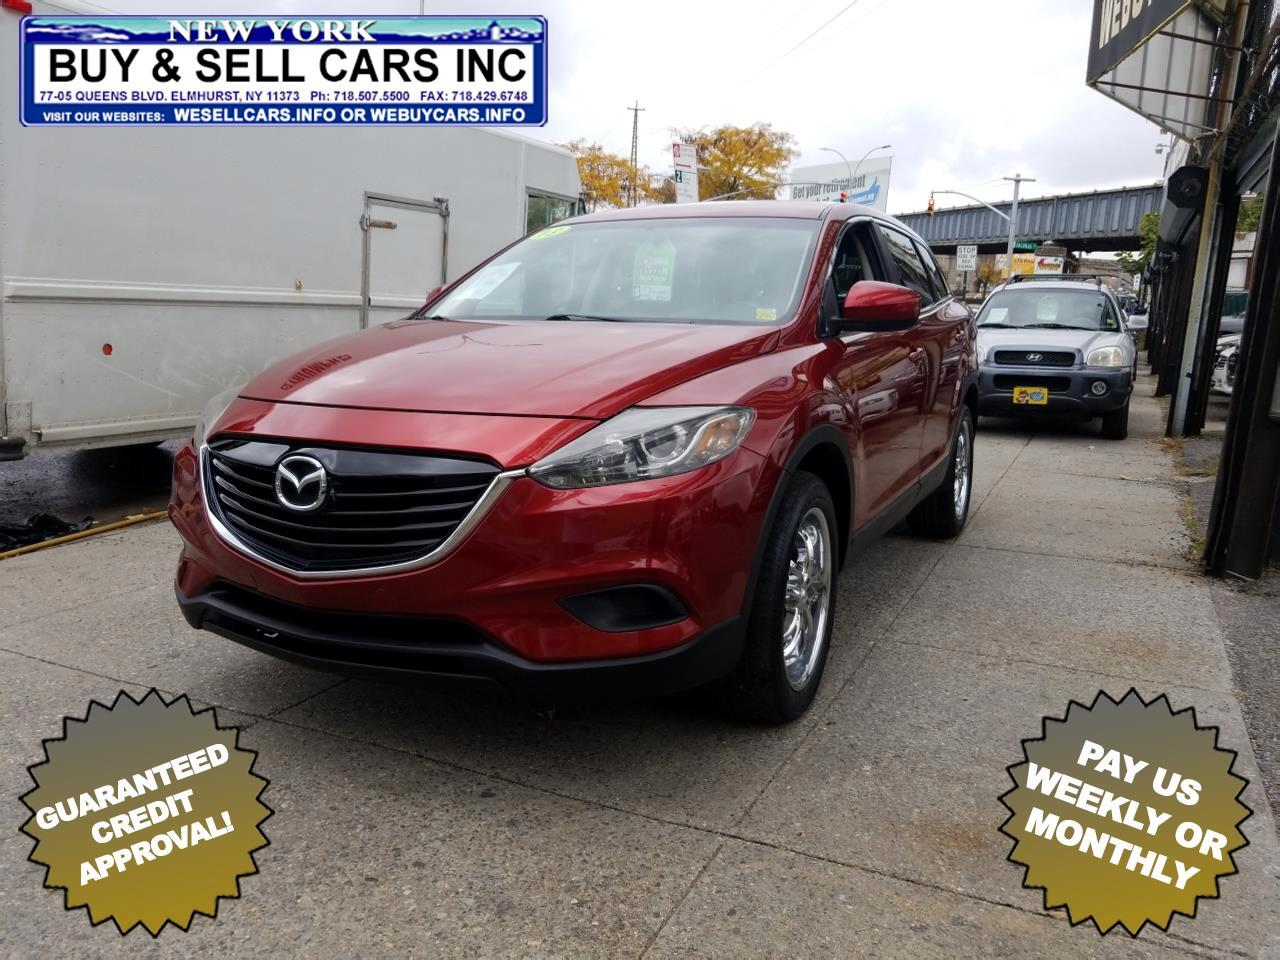 2013 Mazda CX-9 AWD 4dr Touring